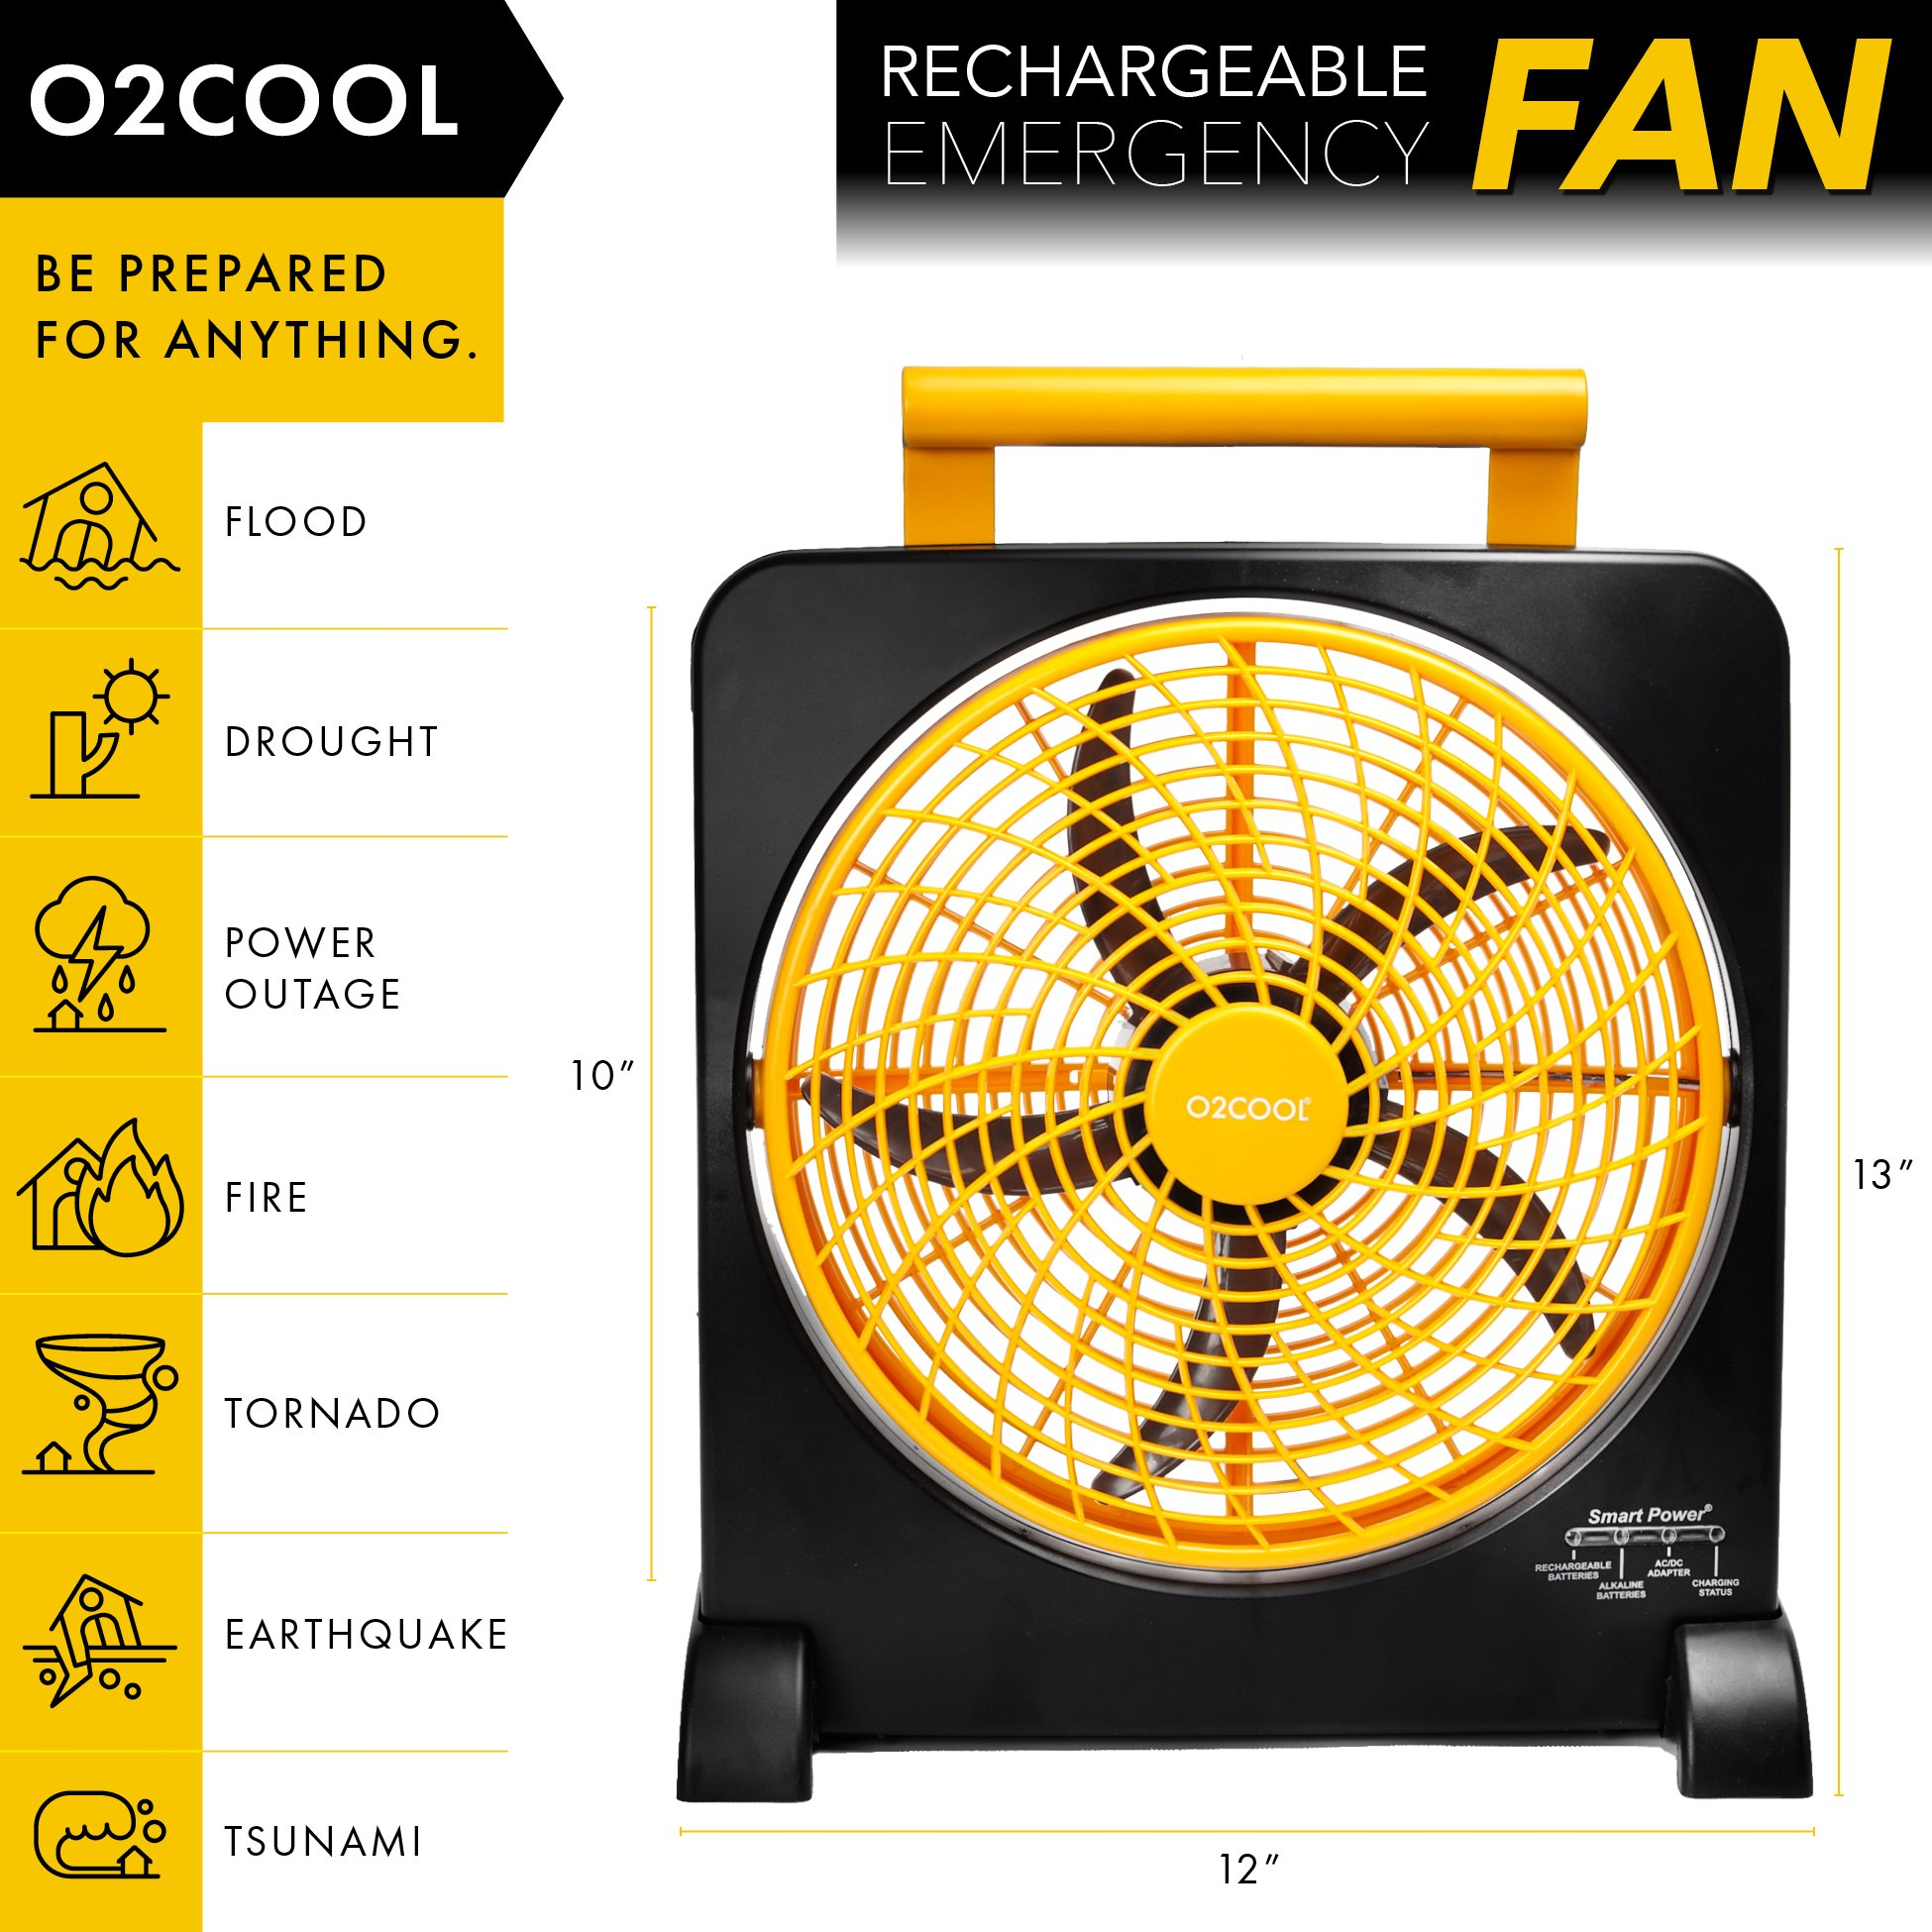 """O2COOL 10"""" Battery Operated Fan - Portable Smart Power Fan with AC Adapter & USB Charging Port for Emergencies, Camping & Travel Use (Orange) by O2COOL (Image #2)"""